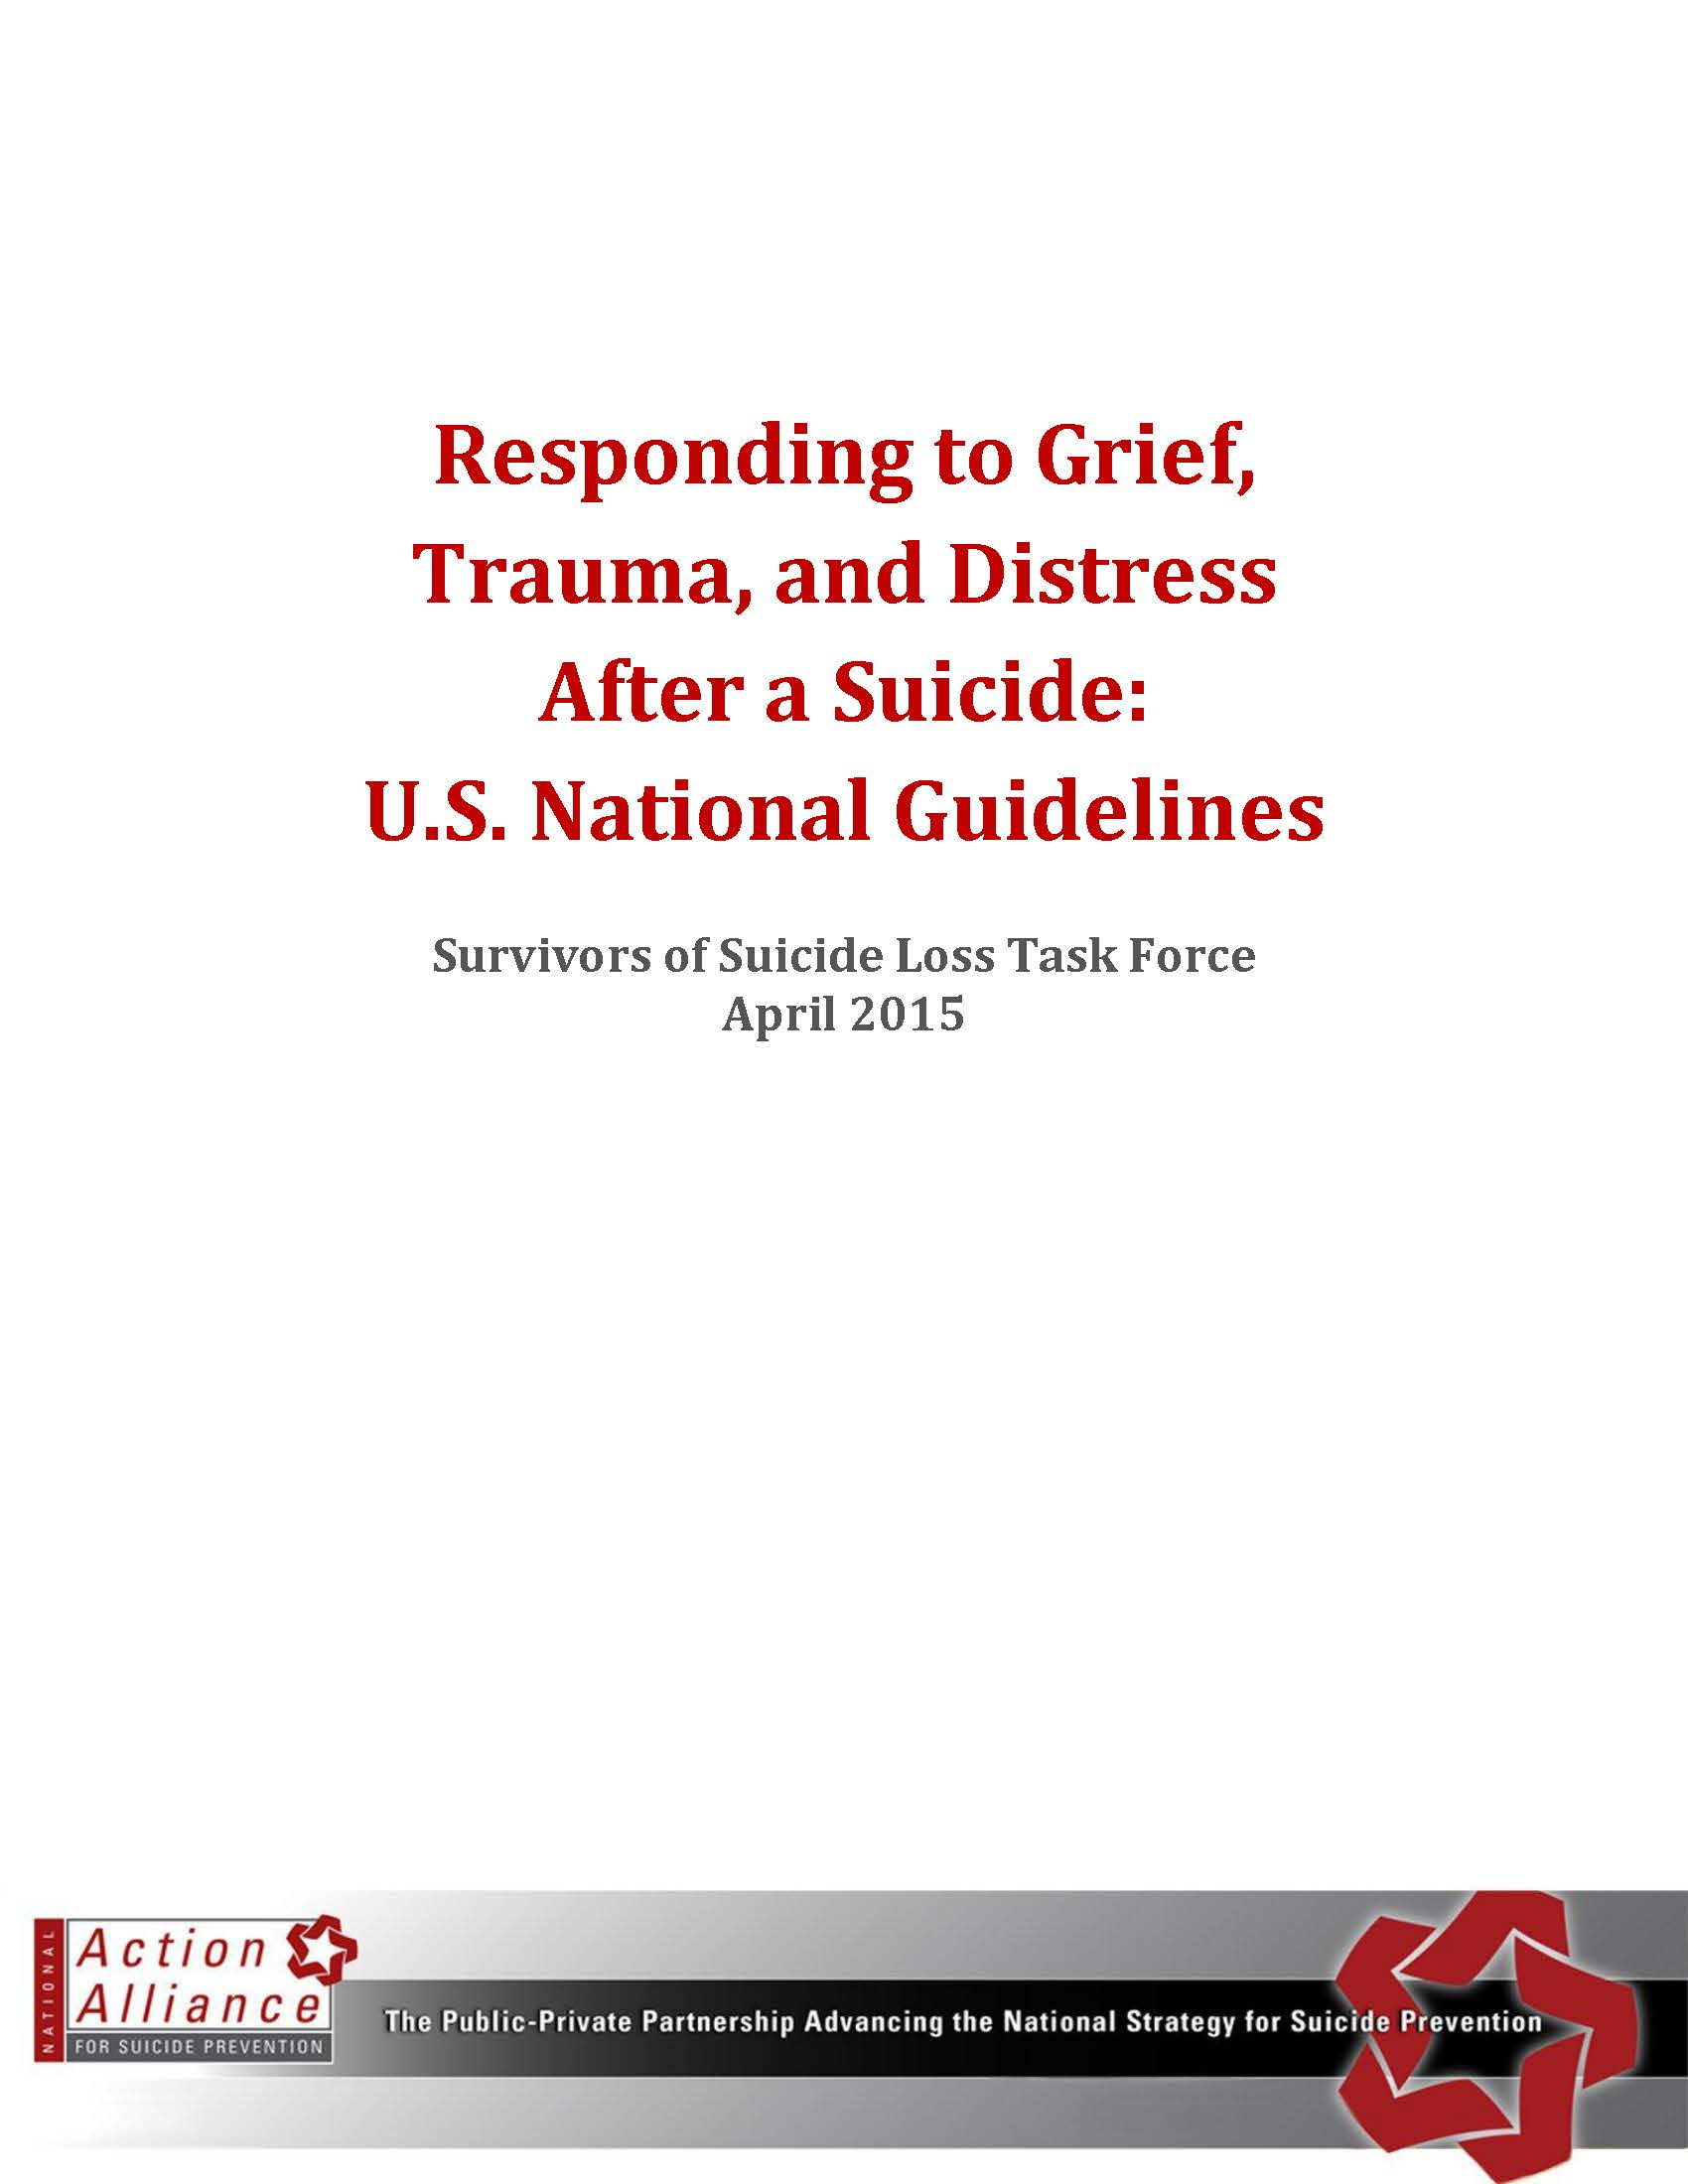 Responding to Grief, Trauma, and Distress After a Suicide: U.S. National Guidelines